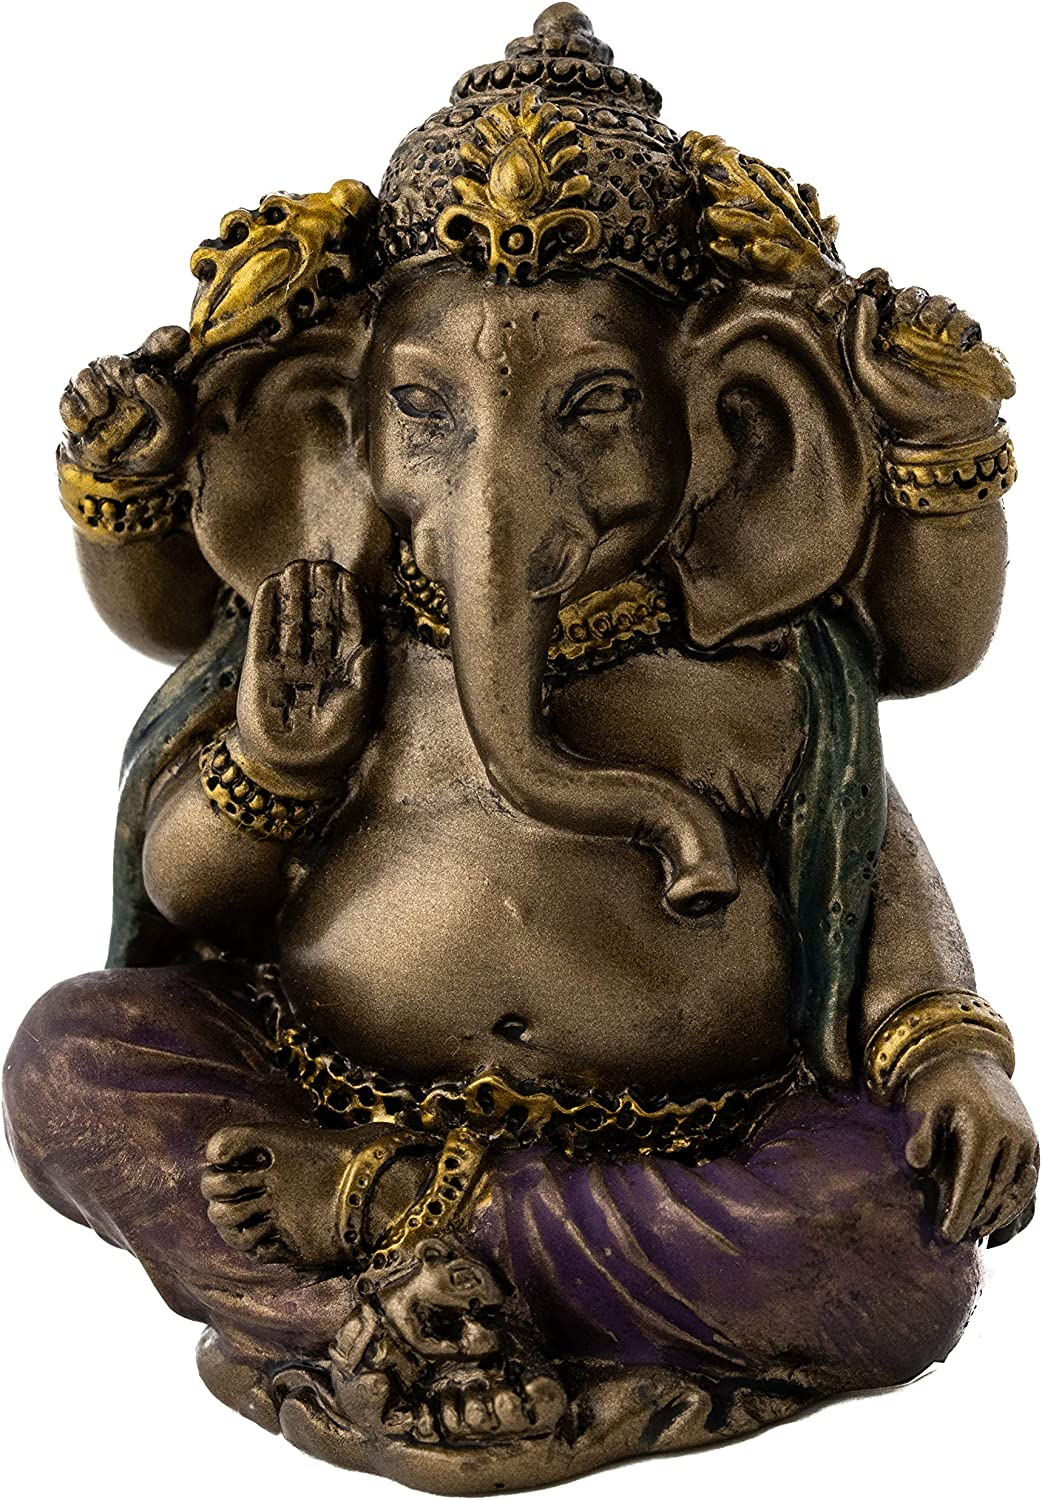 Top Collection Mini Ganesh Statue - Ganesha Lord of Success Sculpture in Premium Cold Cast Bronze with Colored Accents - 2-Inch Collectible New Age Hind God Figurine